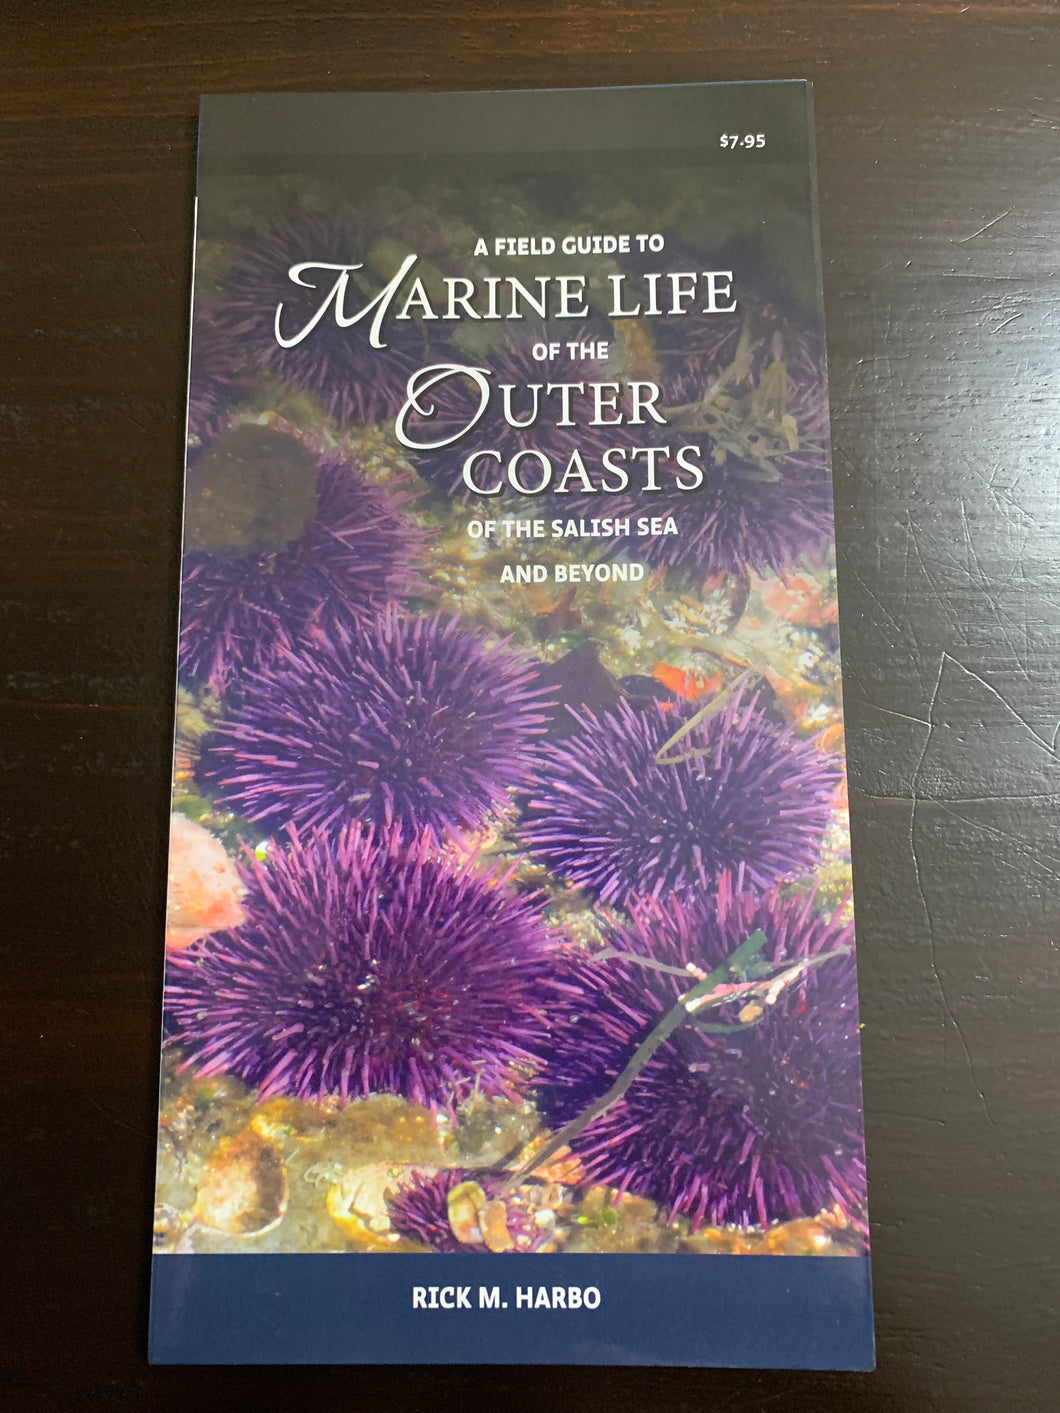 A Field Guide to Marine LIfe of the Outer Coasts of the Salish Sea and Beyond